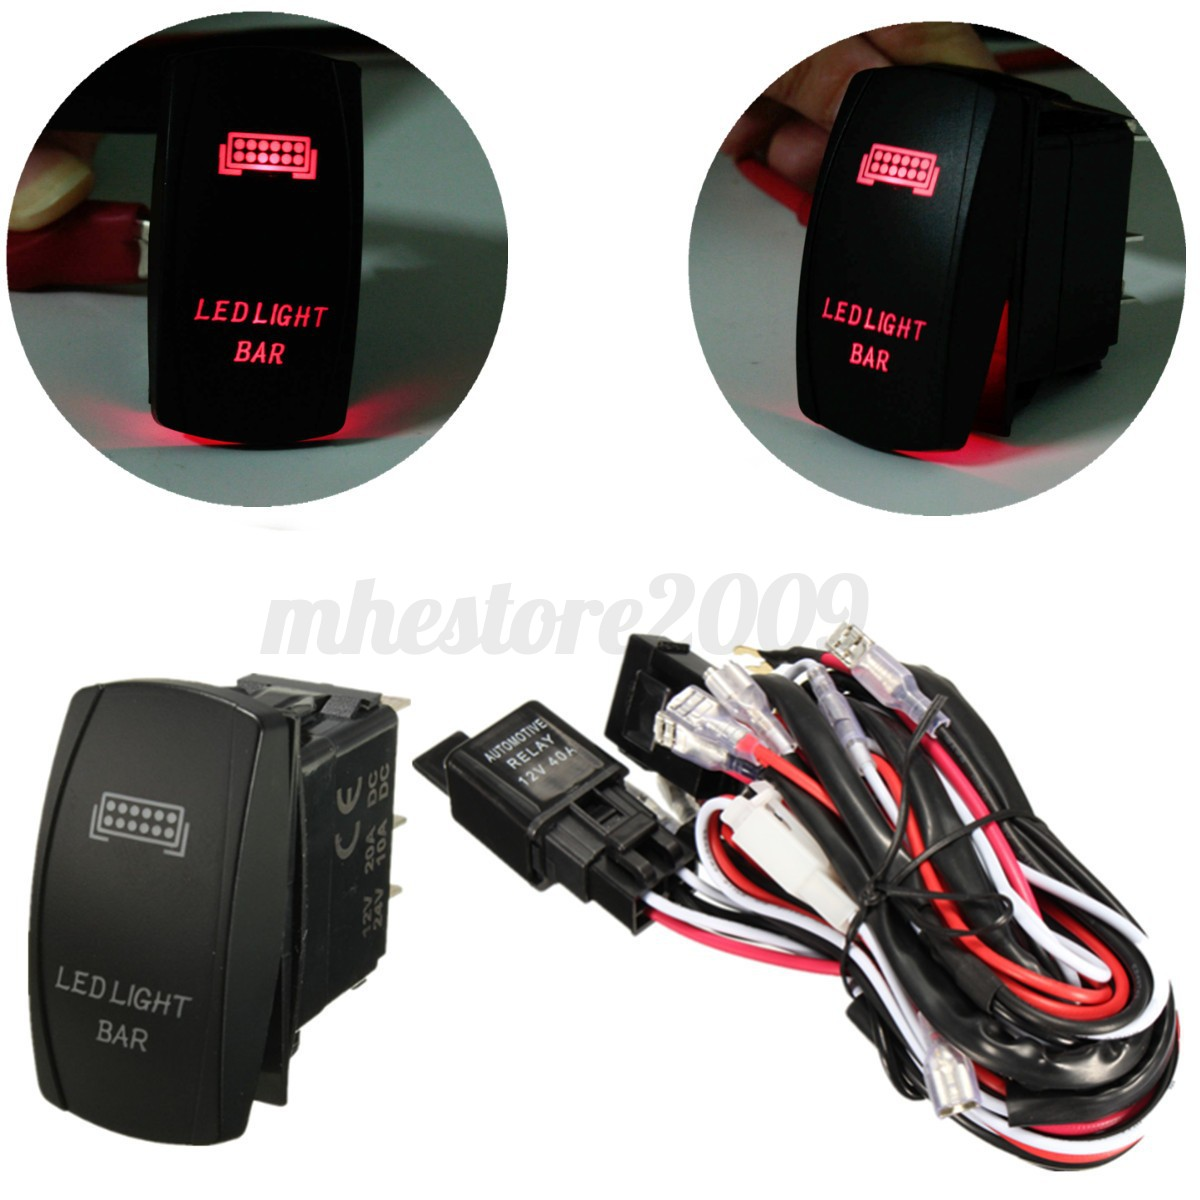 red led light bar laser rocker on off switch amp relay fuse image is loading red led light bar laser rocker on off